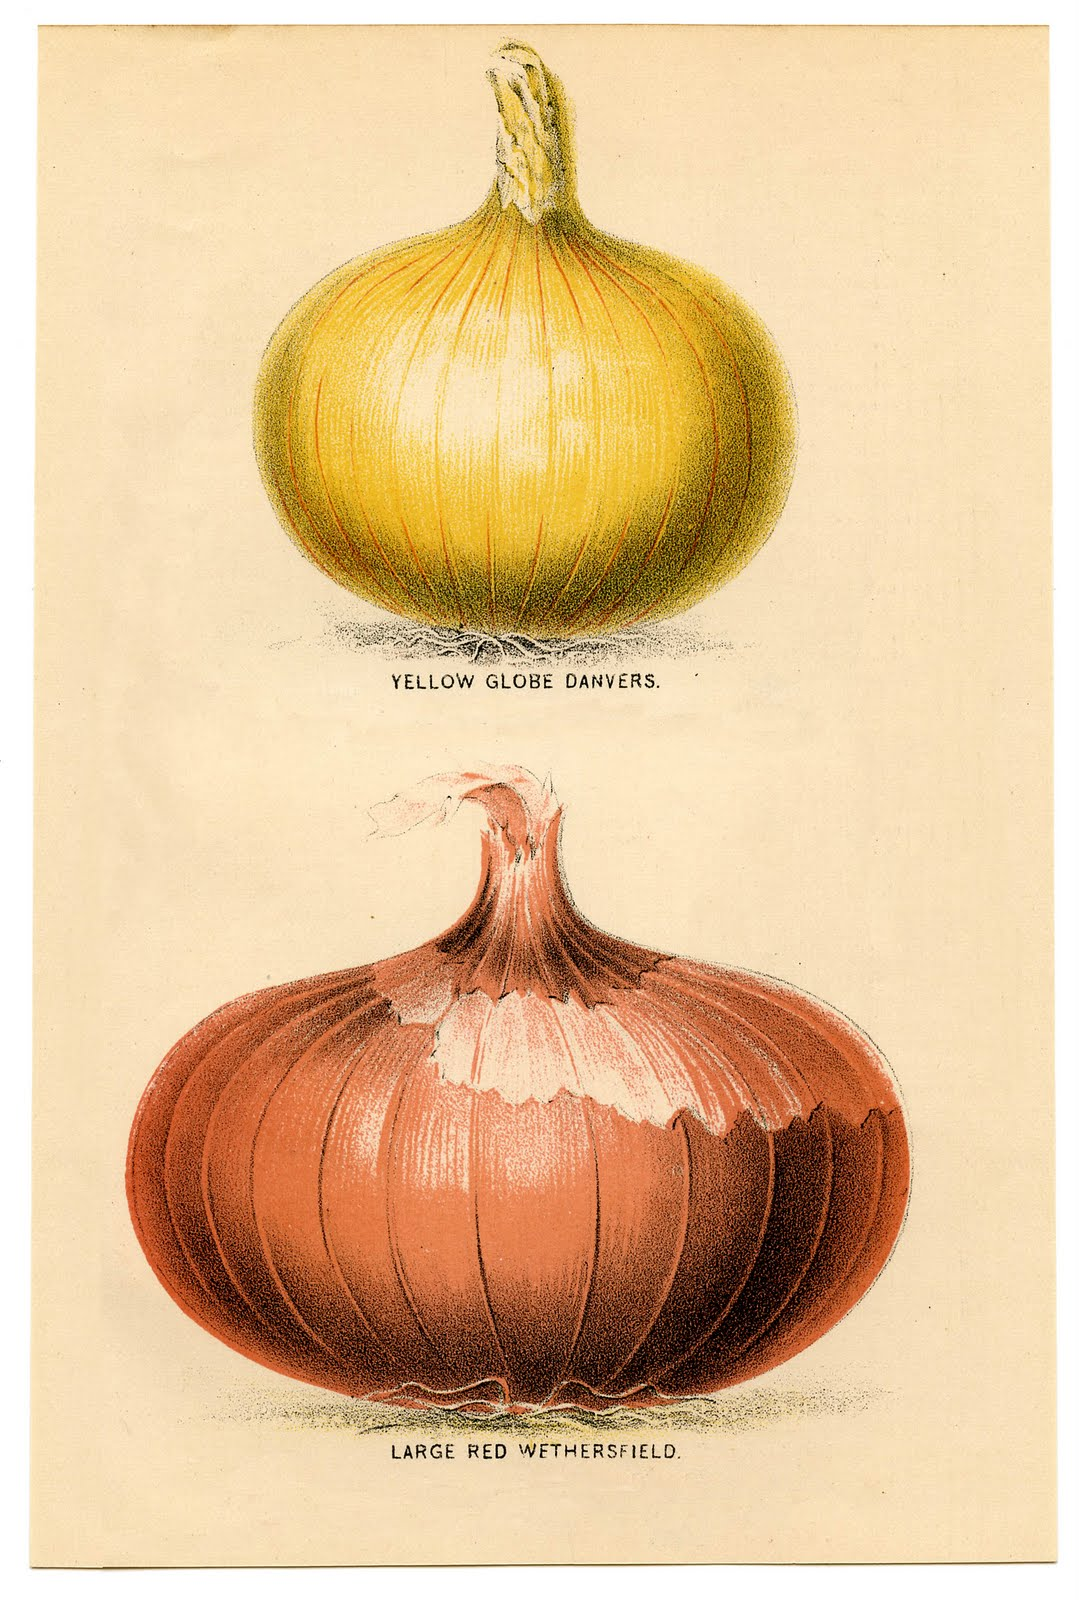 Instant Art Printable Vintage Onions The Graphics Fairy